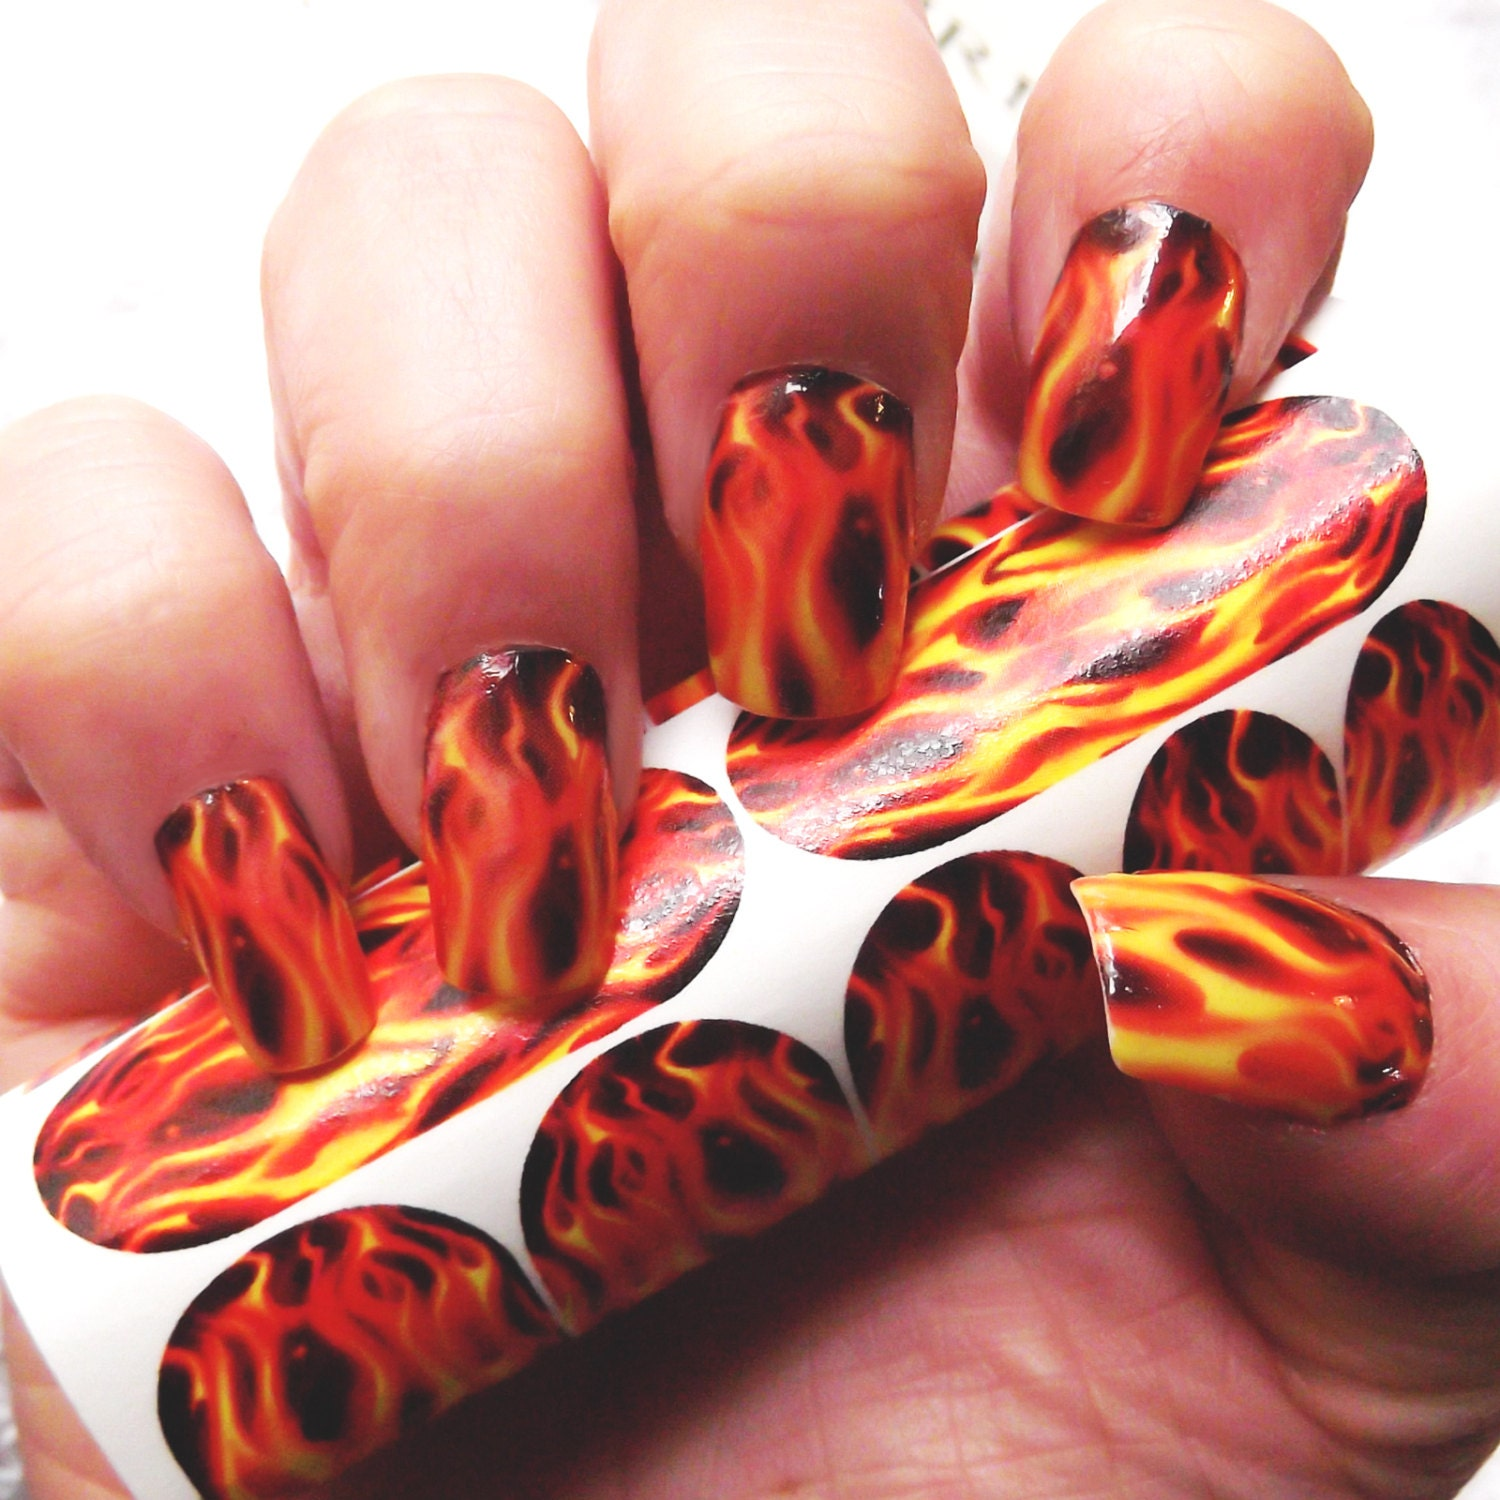 REAL FLAME Nail Art (FMR) For Long Nails -Hunger Games / Motorcycle  Inspired Full Nail Waterslide Decals Not Stickers